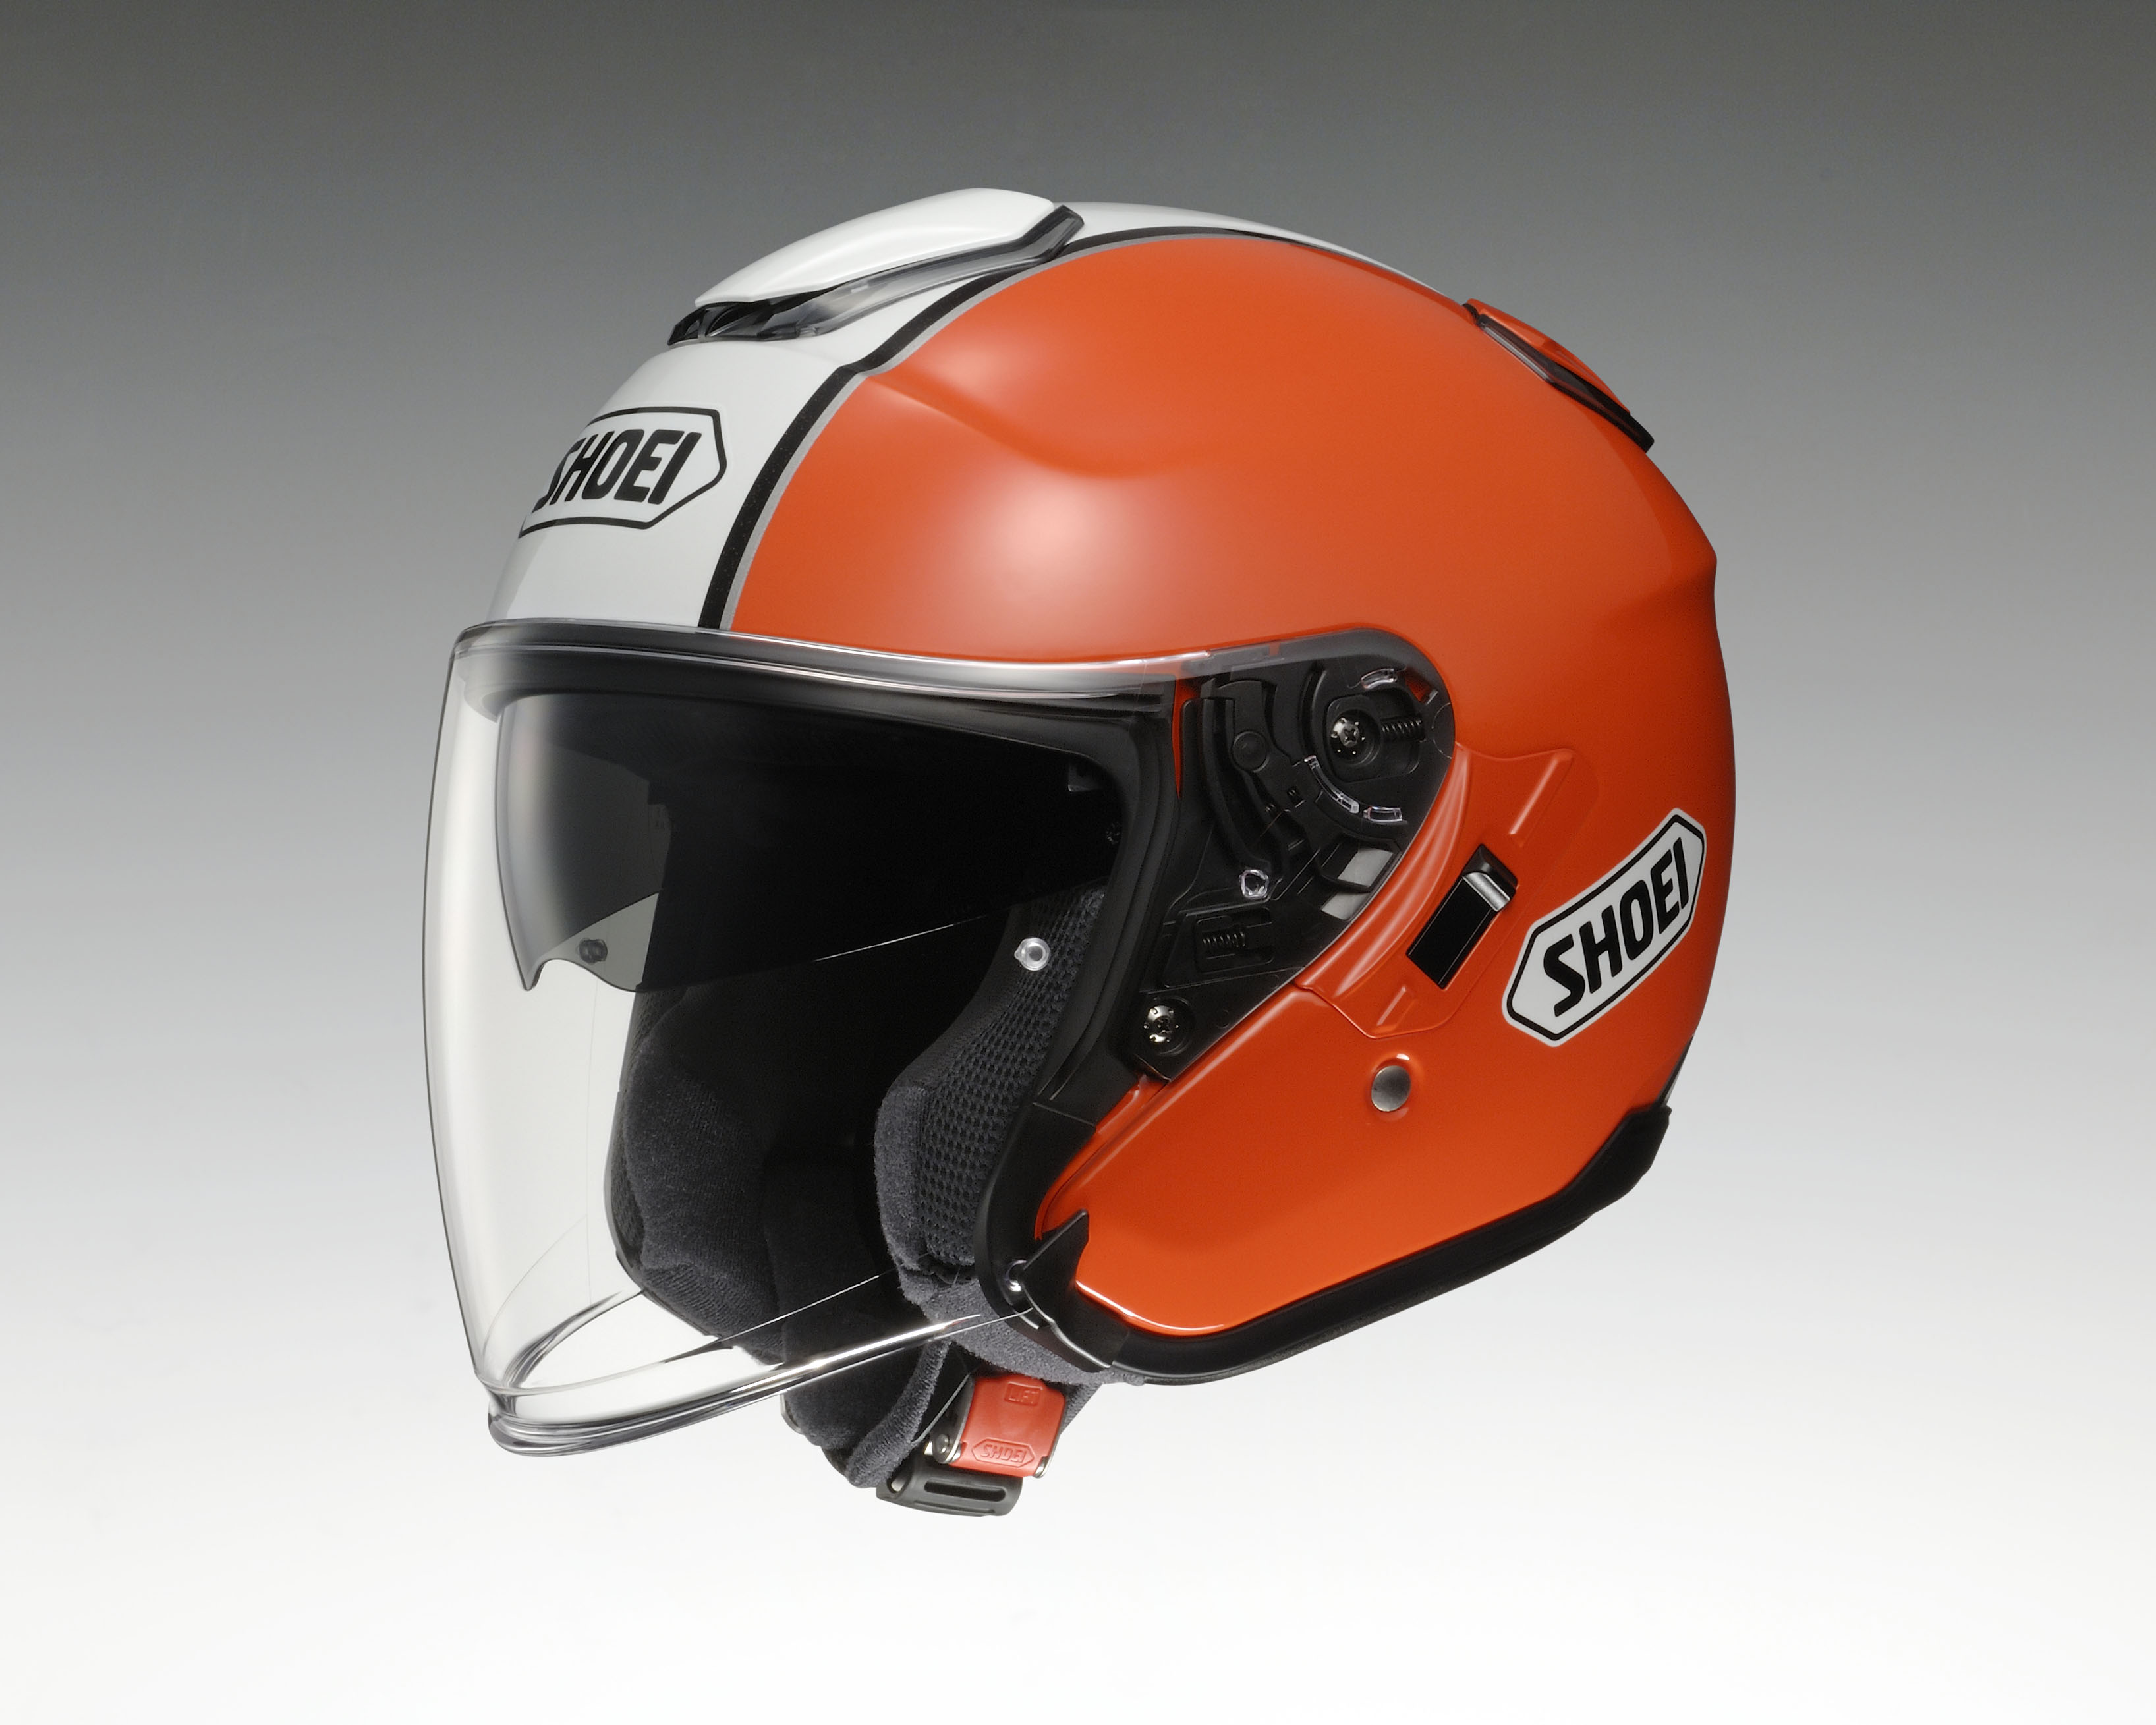 Casco Helmet Jet Shoei J-Cruise CORSO TC-8 moto scooter